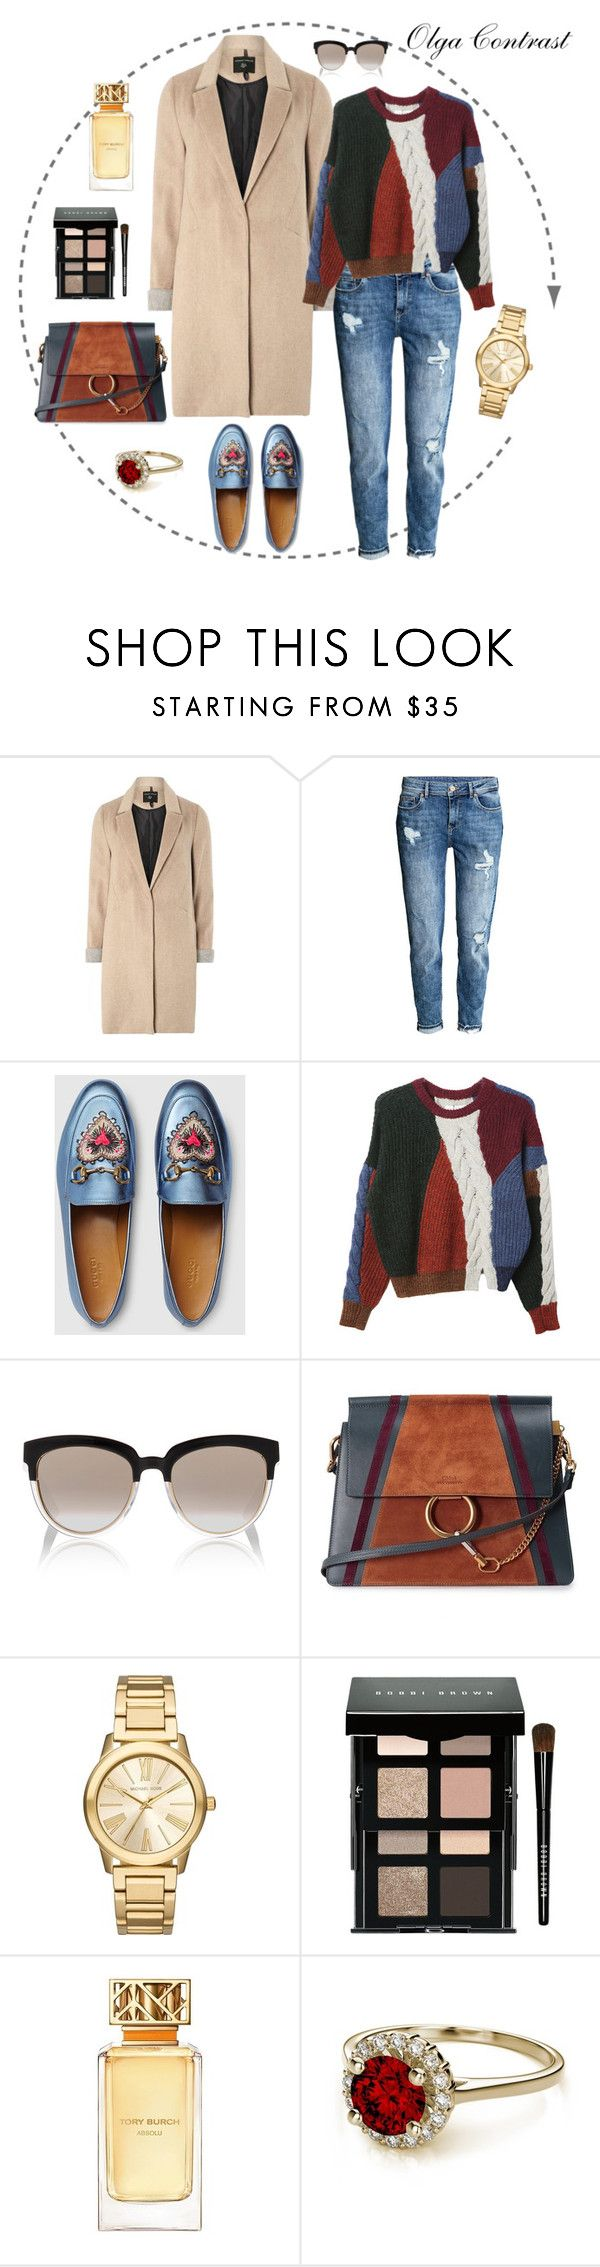 """06.10.2016"" by olgacontrast on Polyvore featuring мода, mel, Gucci, Isabel Marant, Christian Dior, Chloé, Michael Kors, Bobbi Brown Cosmetics и Tory Burch"